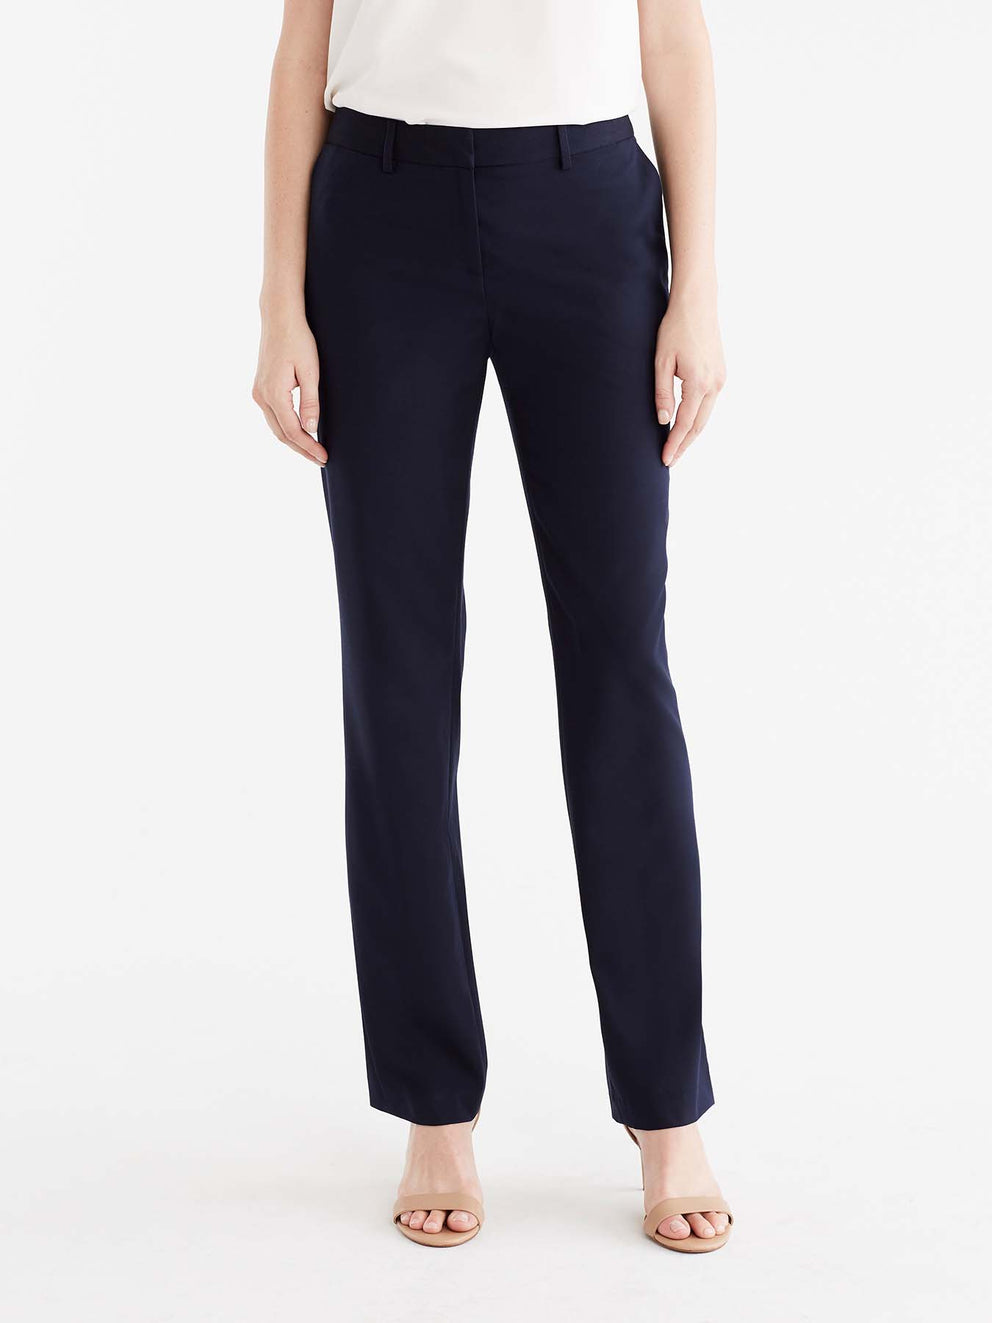 The Jones New York Washable Sydney Pant in color Navy - Image Position 4